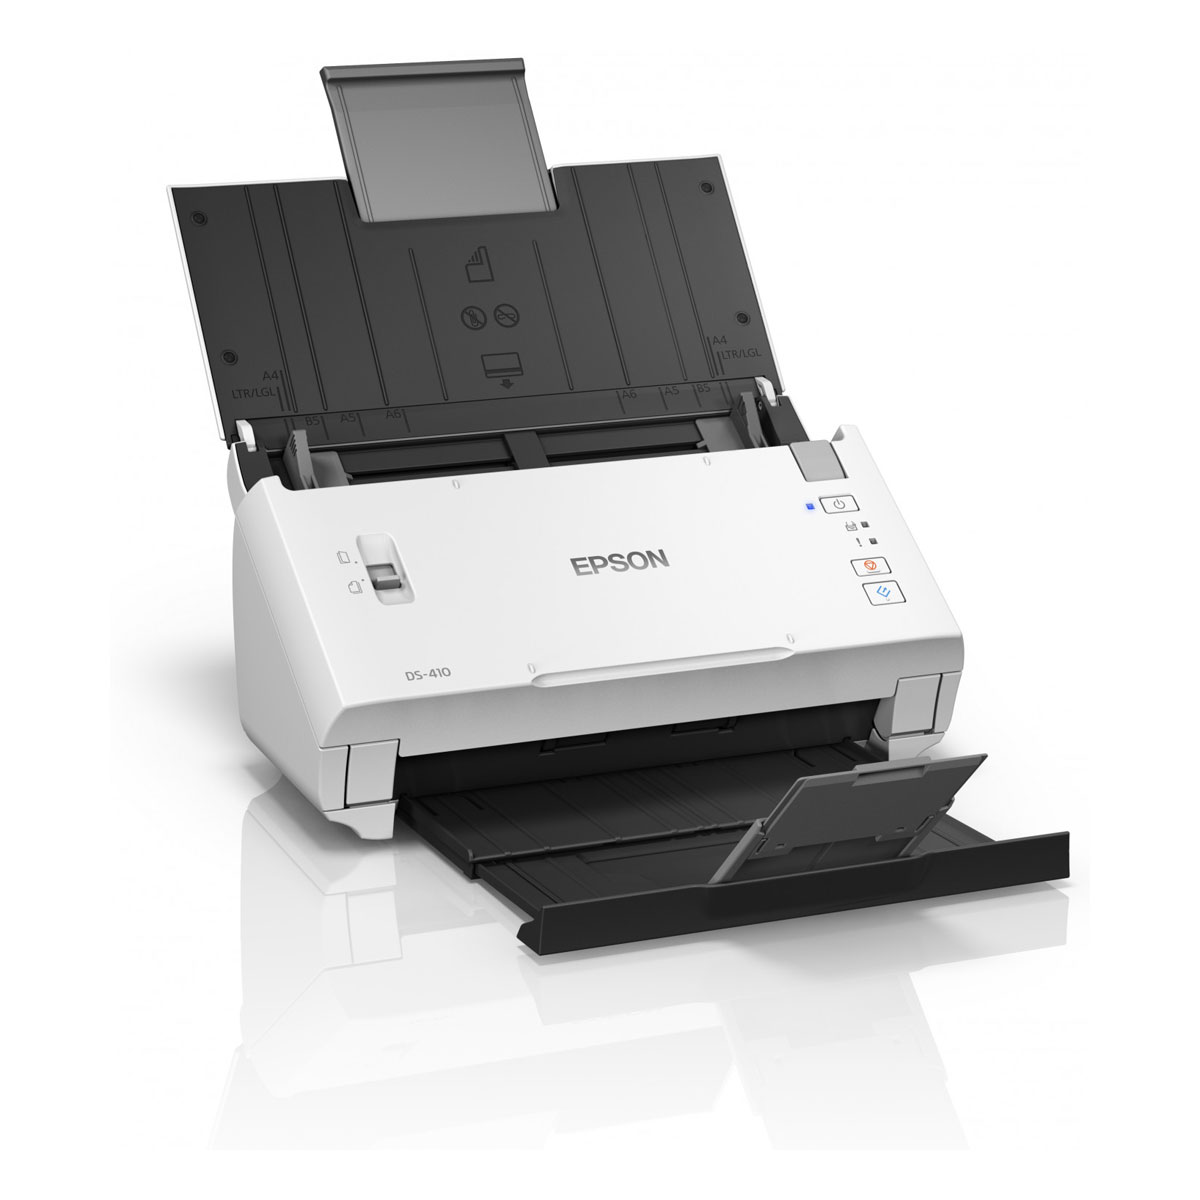 Scanner Epson WorkForce DS-410 (B11B249401) - Achat / Vente Scanner sur Picata.fr - 2